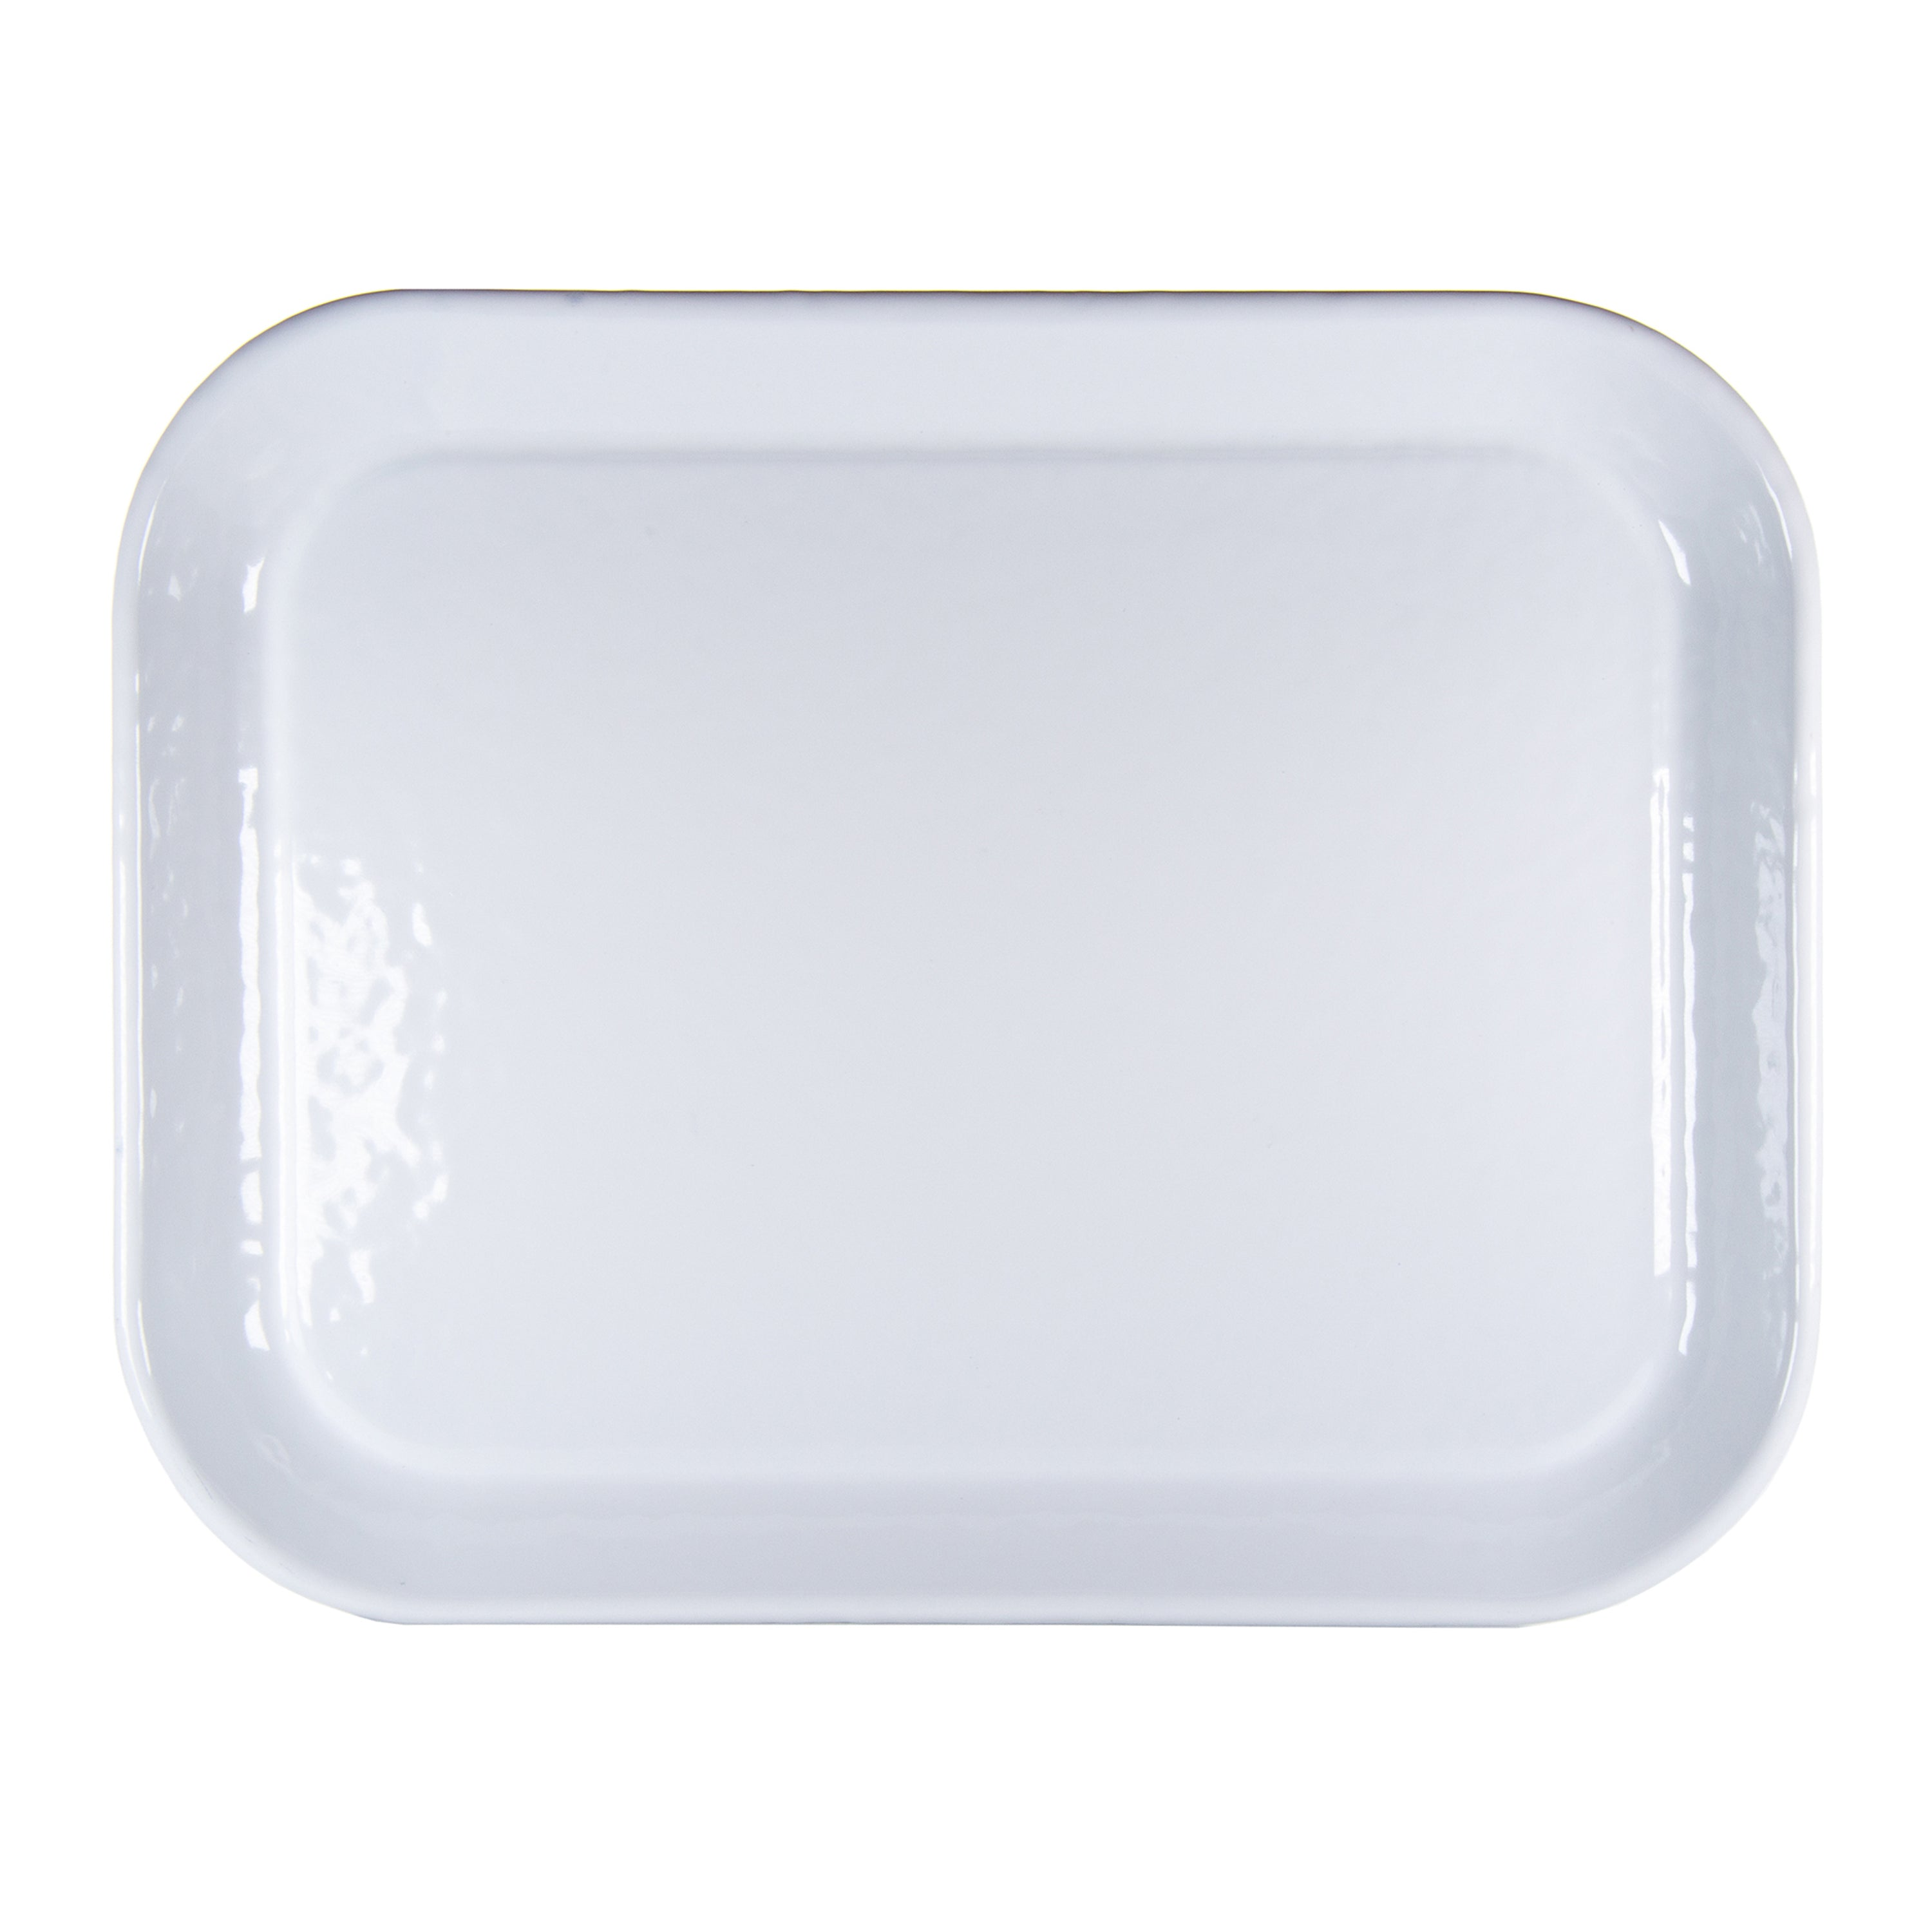 WW98 - Solid White Half Sheet Tray Image 1